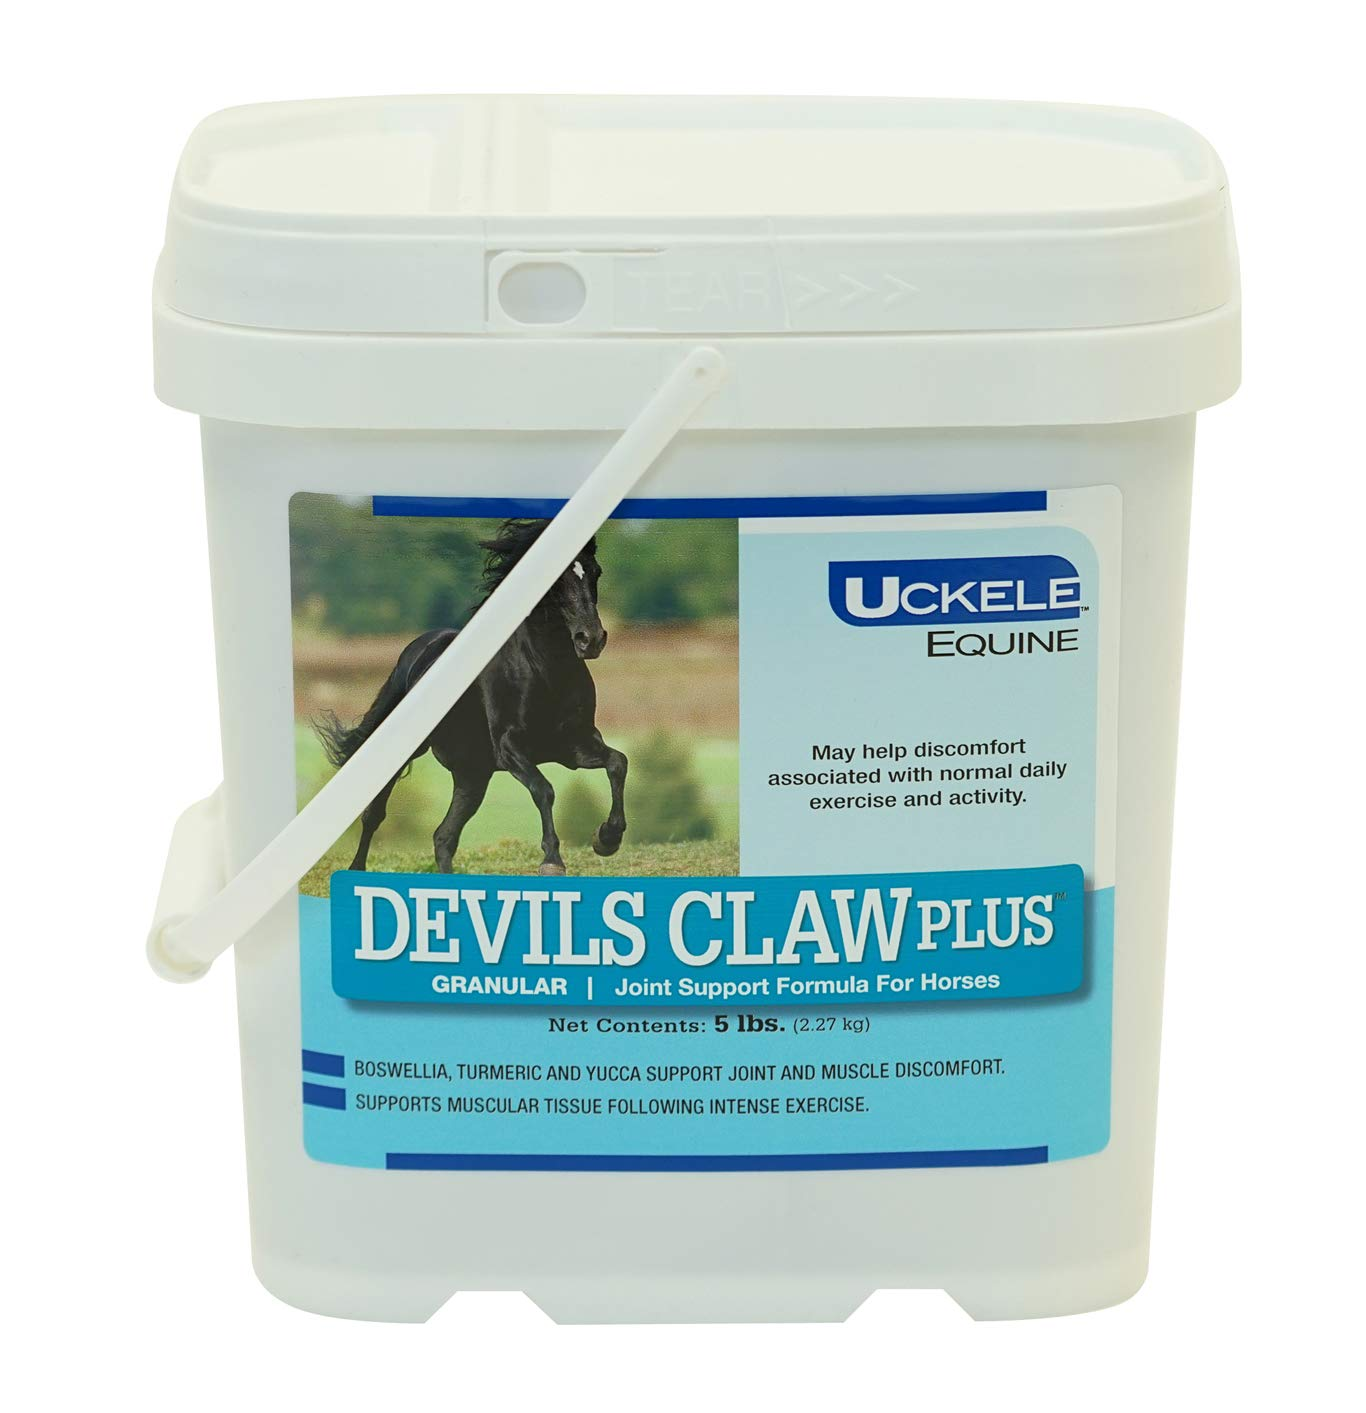 Uckele Devils Claw Plus Powder, 5 lb